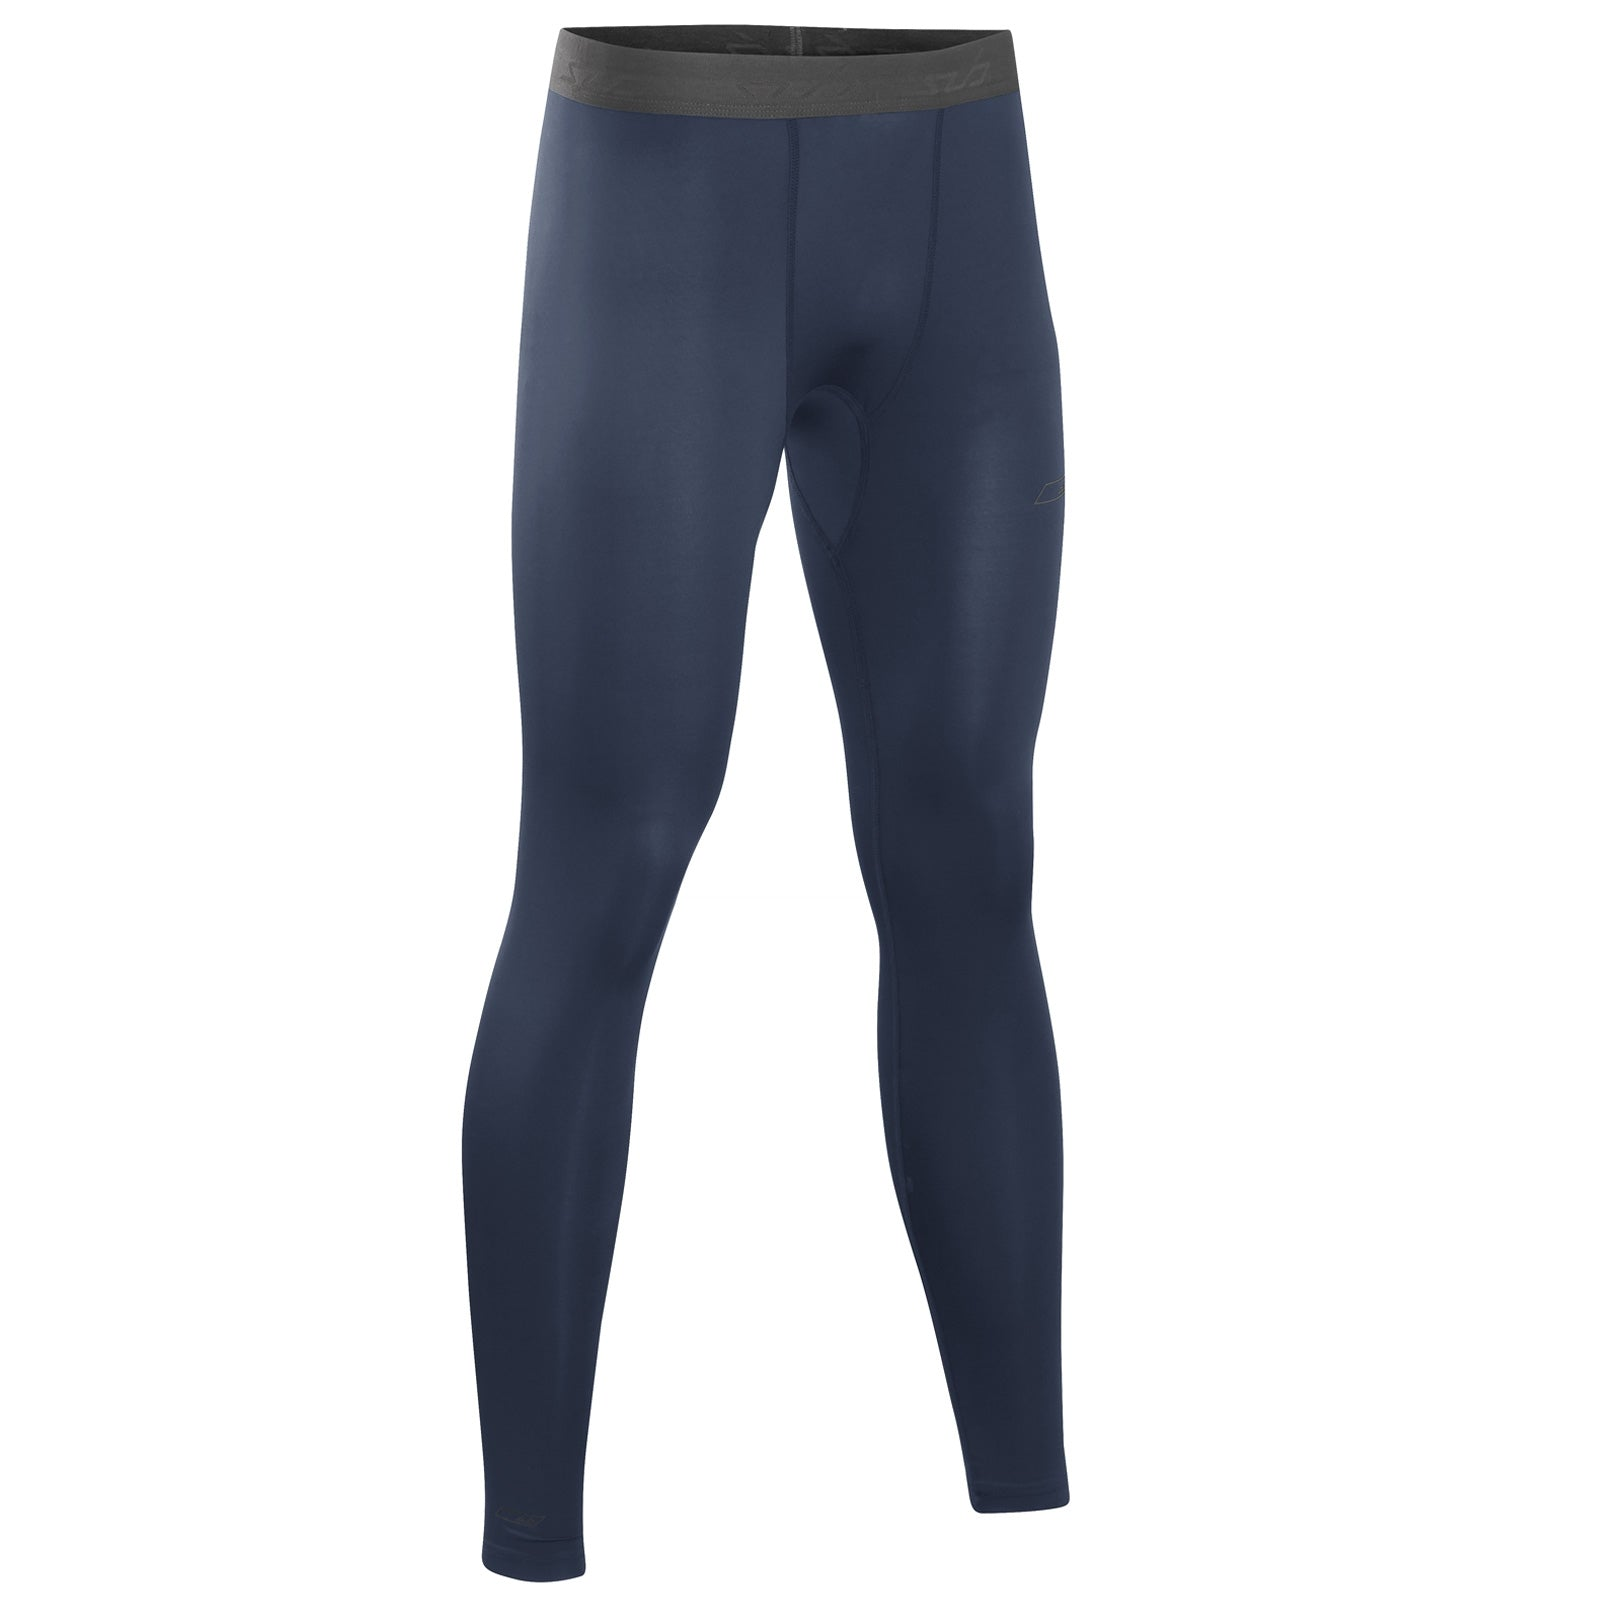 Sub Sports Core Recovery Mens Compression Tights Navy Blue Base Layer Leggings